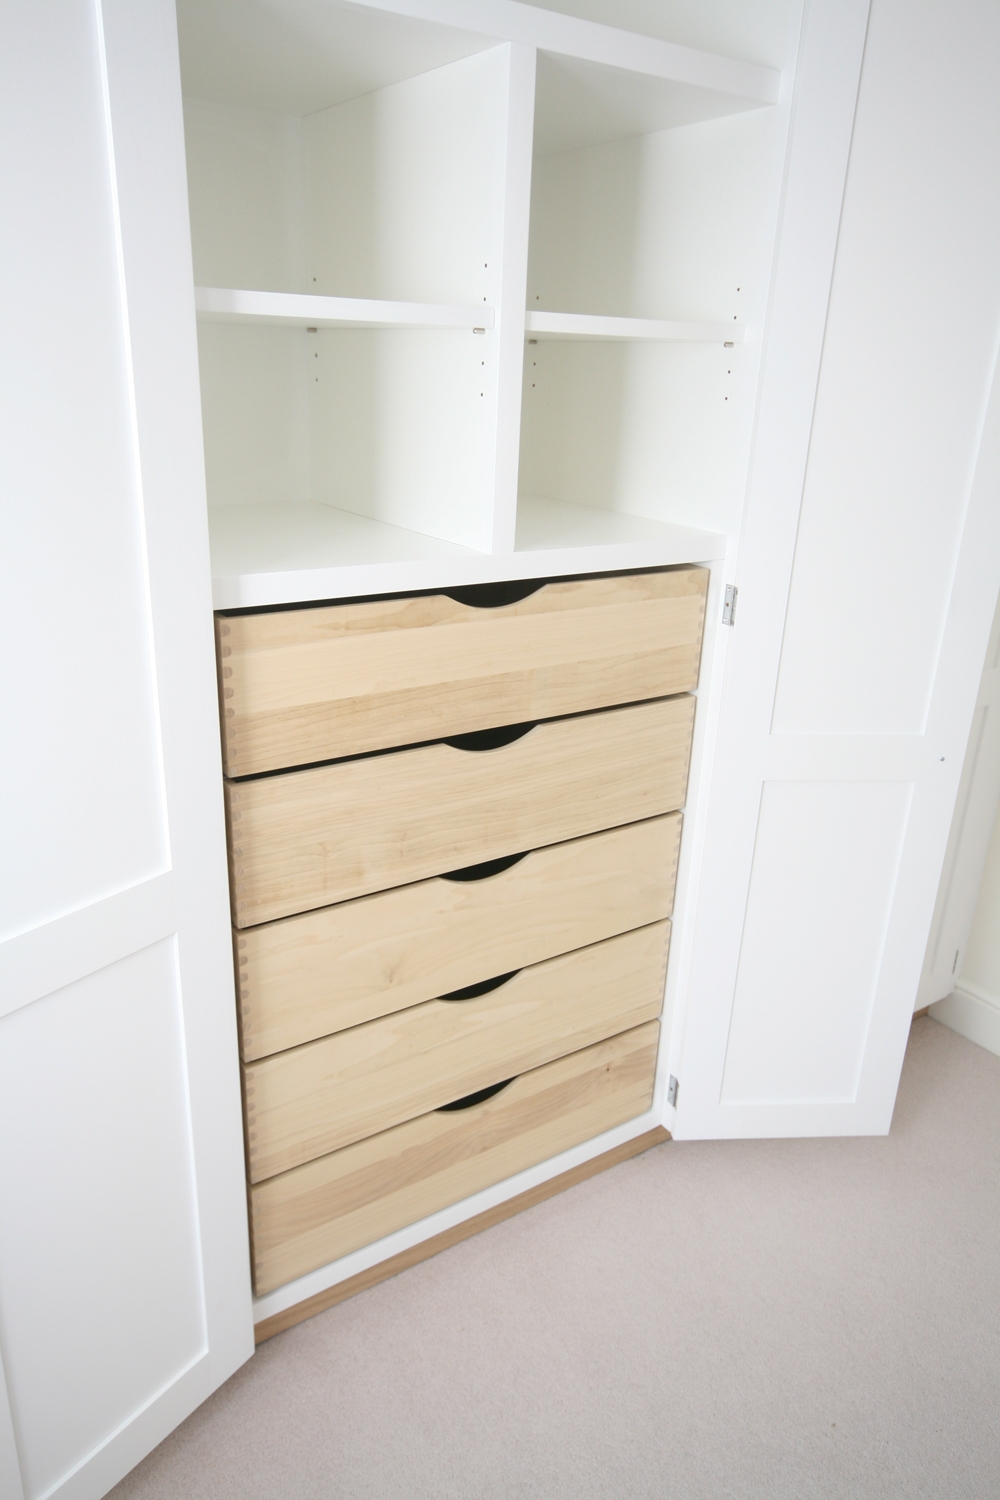 Wall To Wall Fitted Wardrobes With Drawers Throughout Drawers For Fitted Wardrobes (Image 15 of 15)